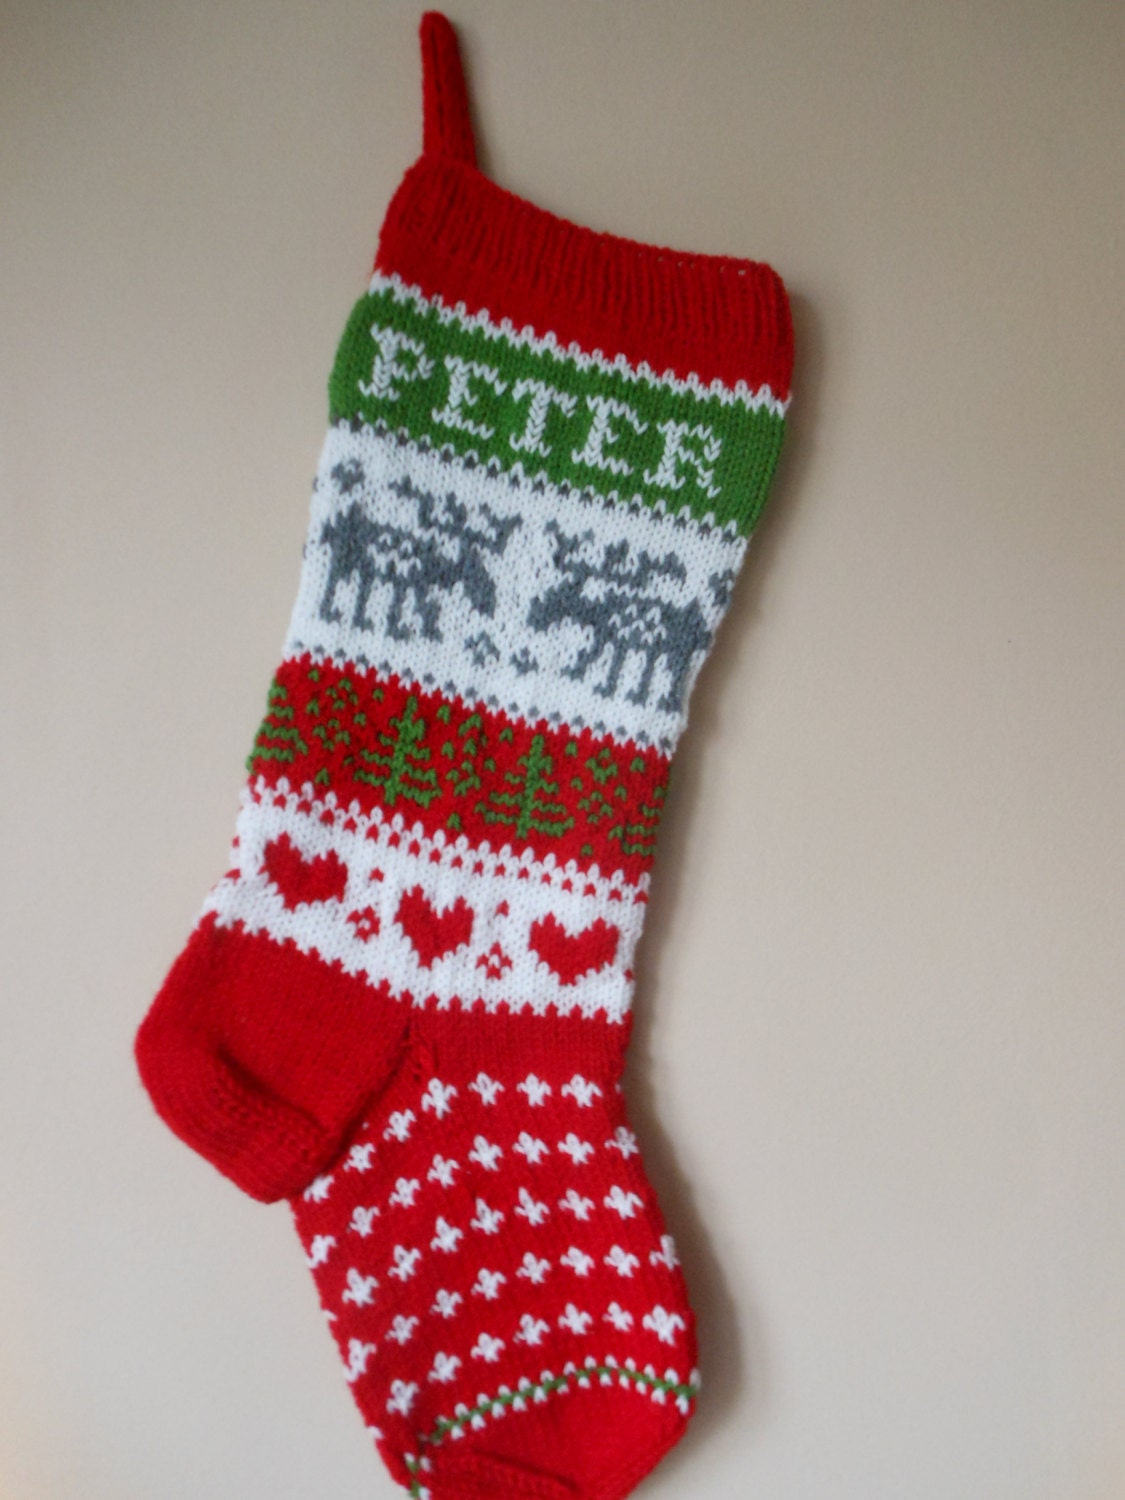 Personalized Knit Stockings Related Keywords